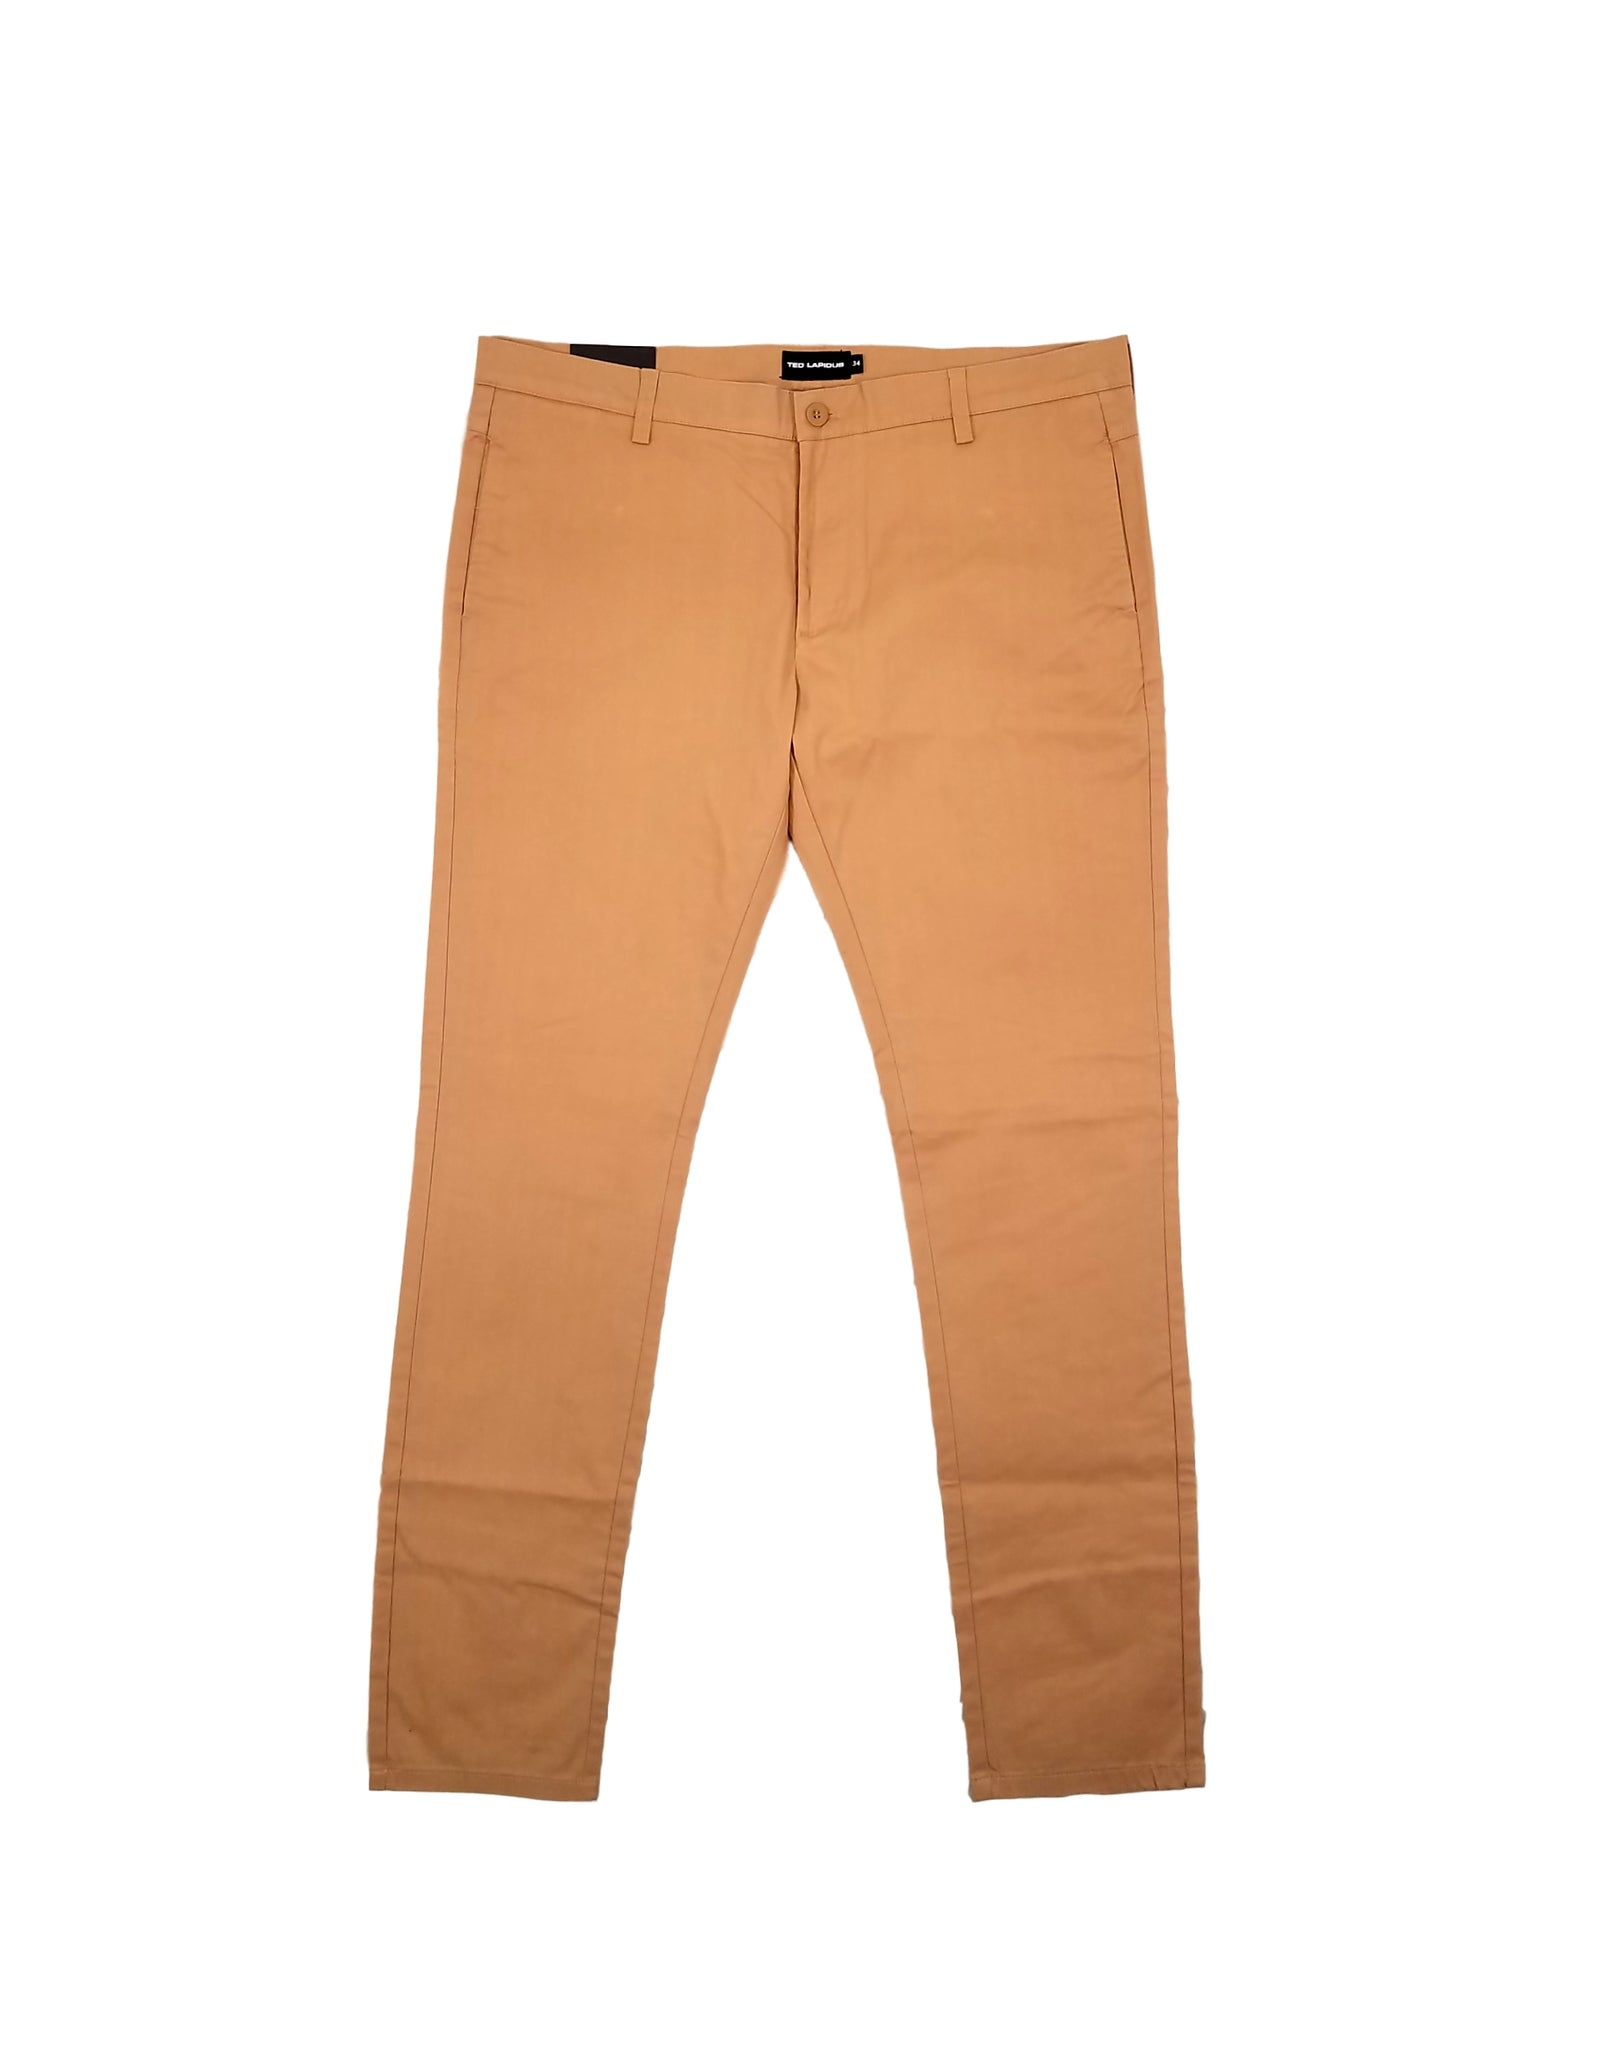 Ted Lapidus Men's Colored Pants TL-J23-102C